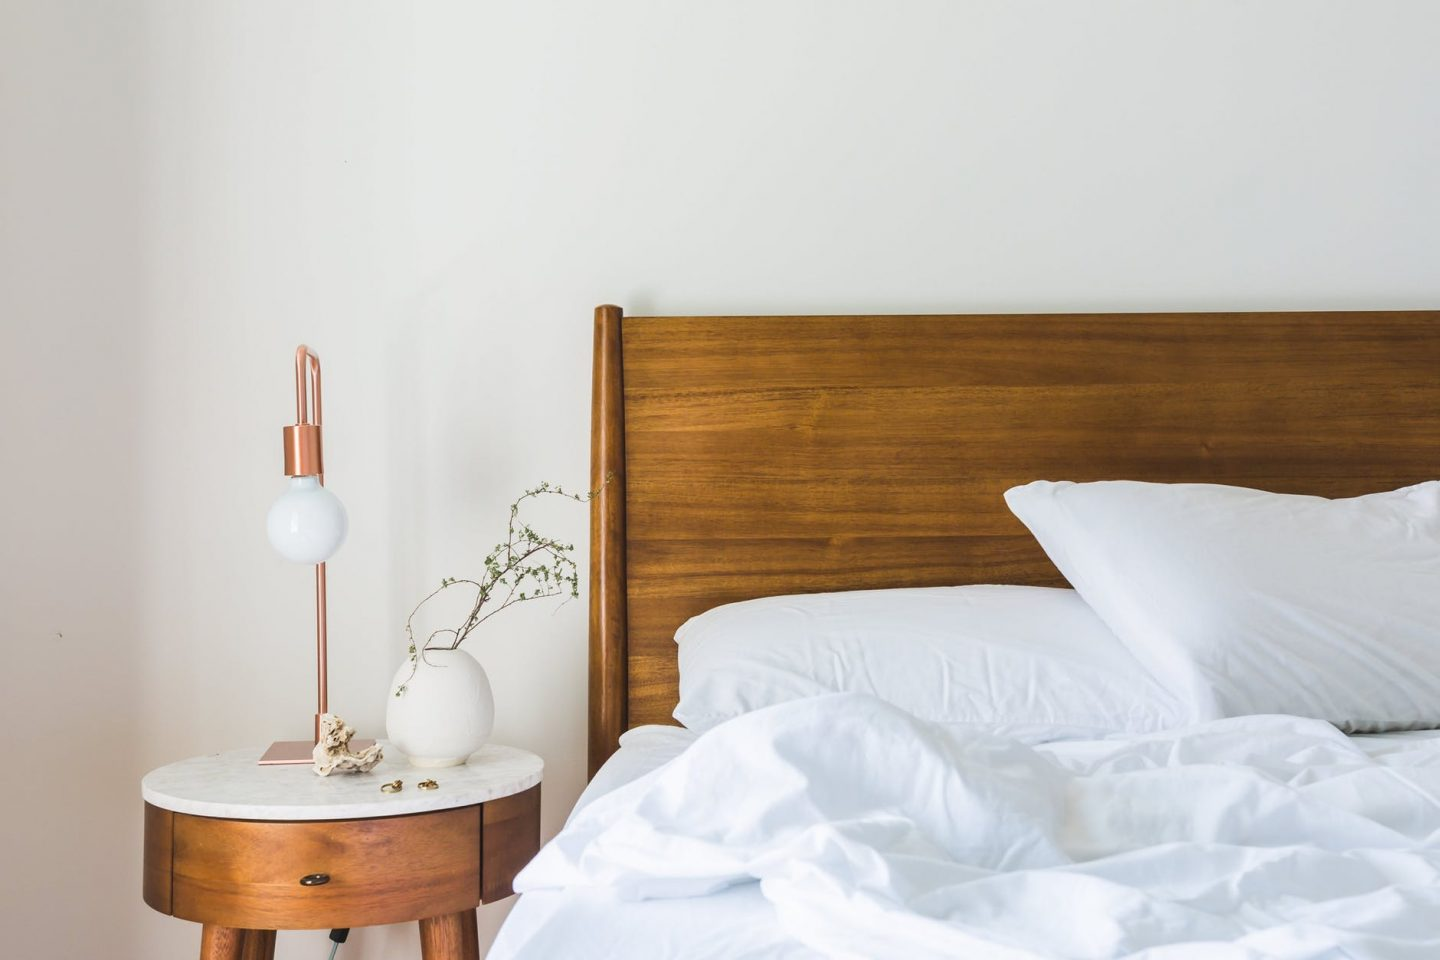 7 Simple Ways to Get Your Bedroom Ready for Spring